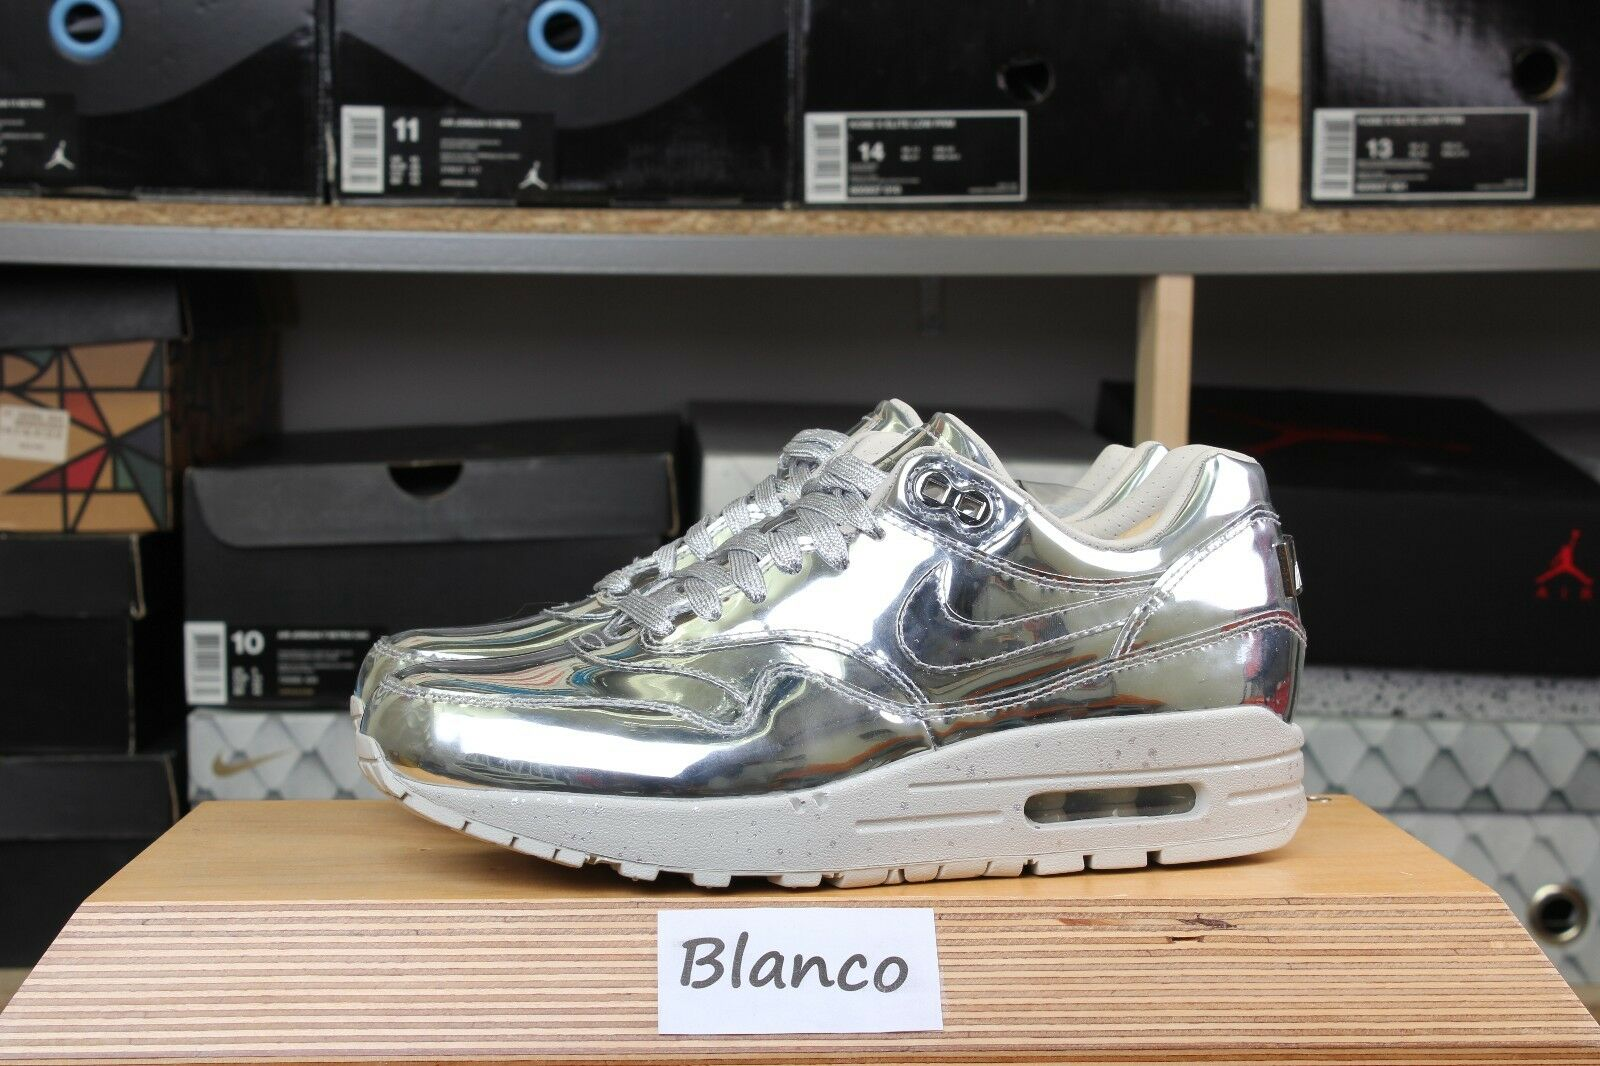 5738eefdef DS WMNS Nike Air Max 1 SP Liquid Silver Metallic UK 4 635786-002 ...